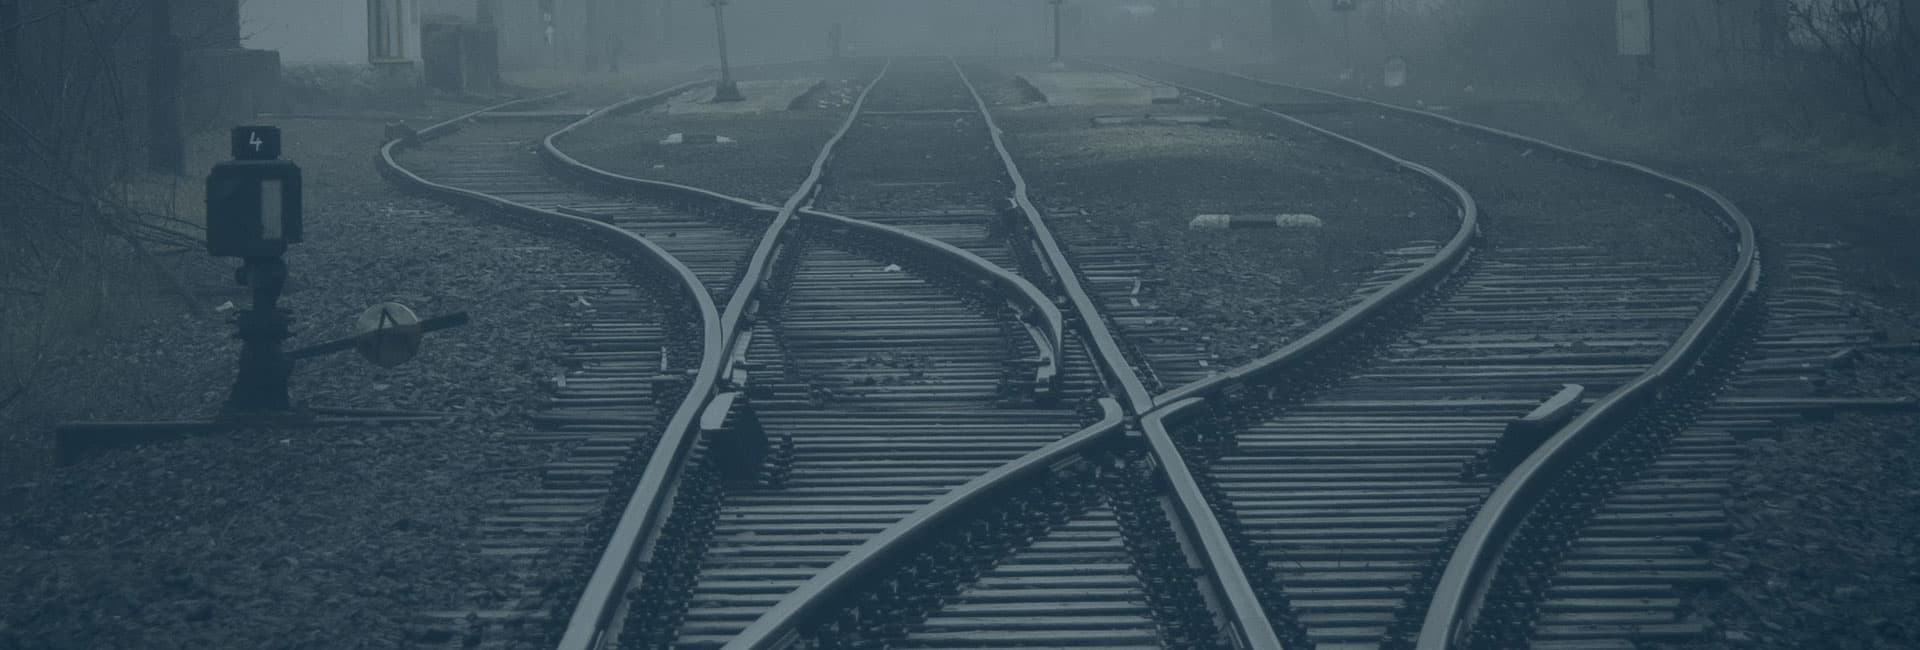 optical character recognition train tracks image link to deflection page